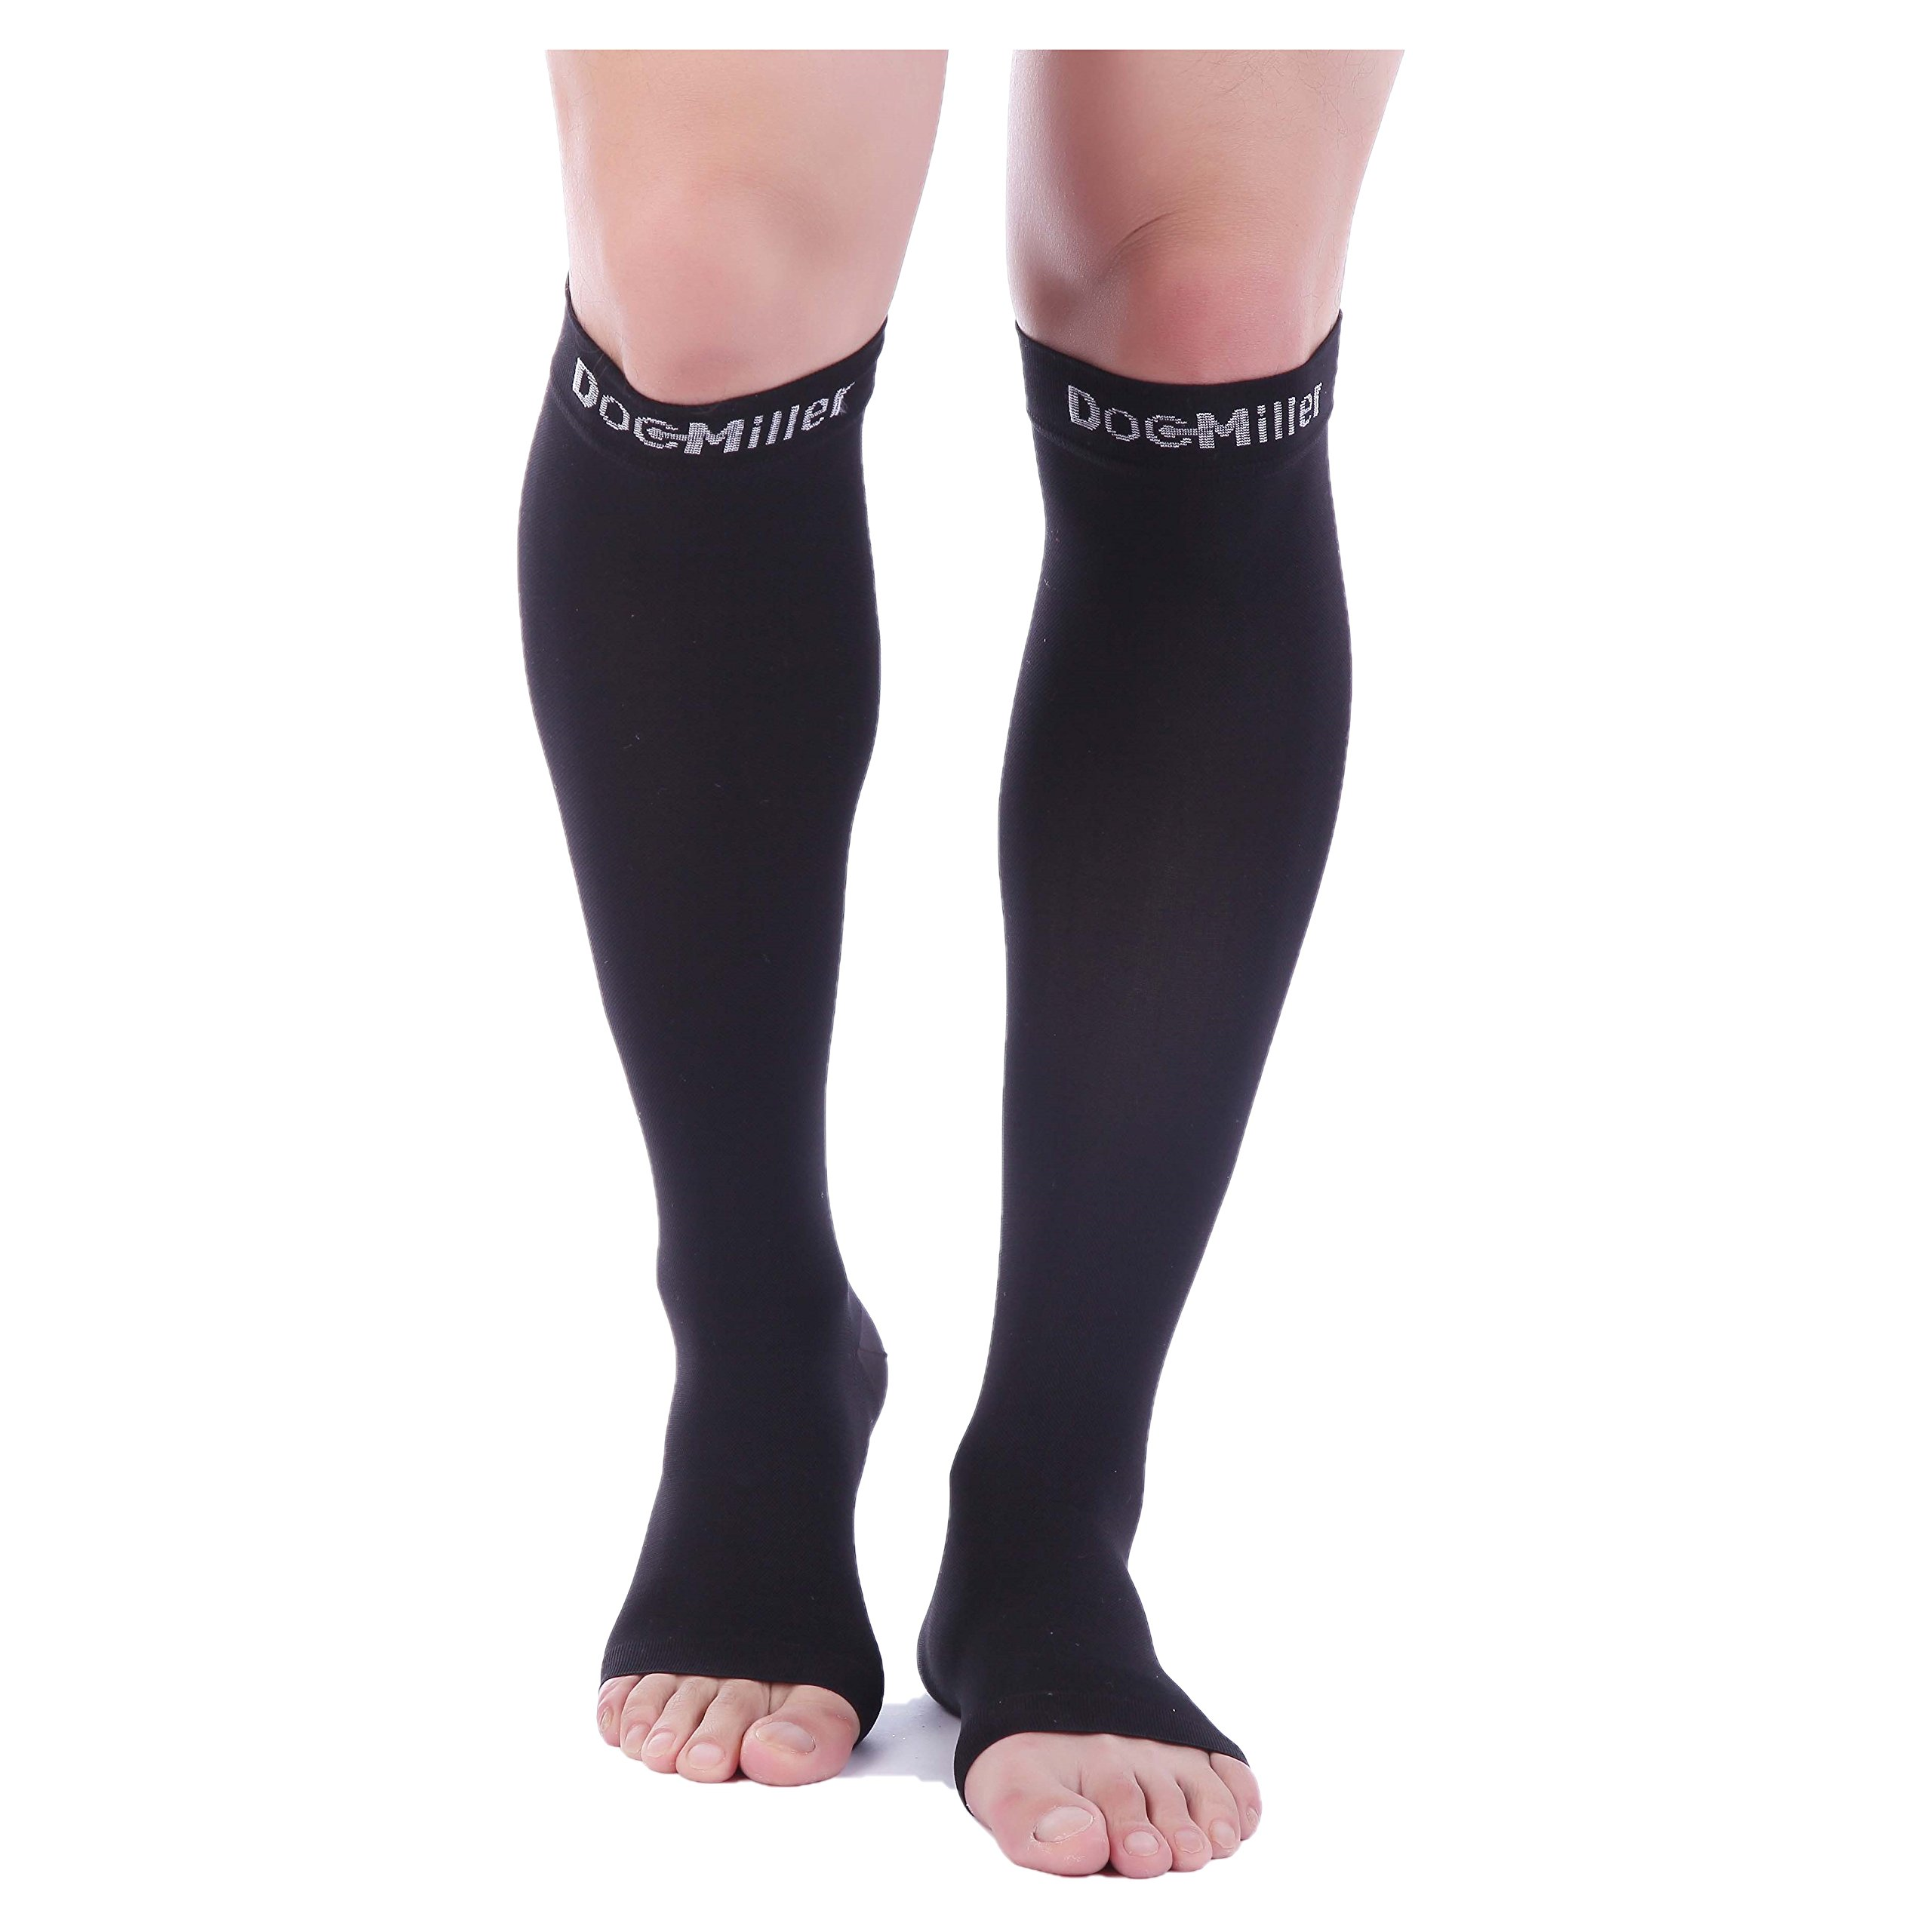 Doc Miller Premium Open Toe Compression Sleeve 1 Pair 20-30mmHg Strong Calf Support Graduated Pressure for Sports Running Muscle Recovery Shin Splints Varicose Veins (2-Pack, Black, Small)